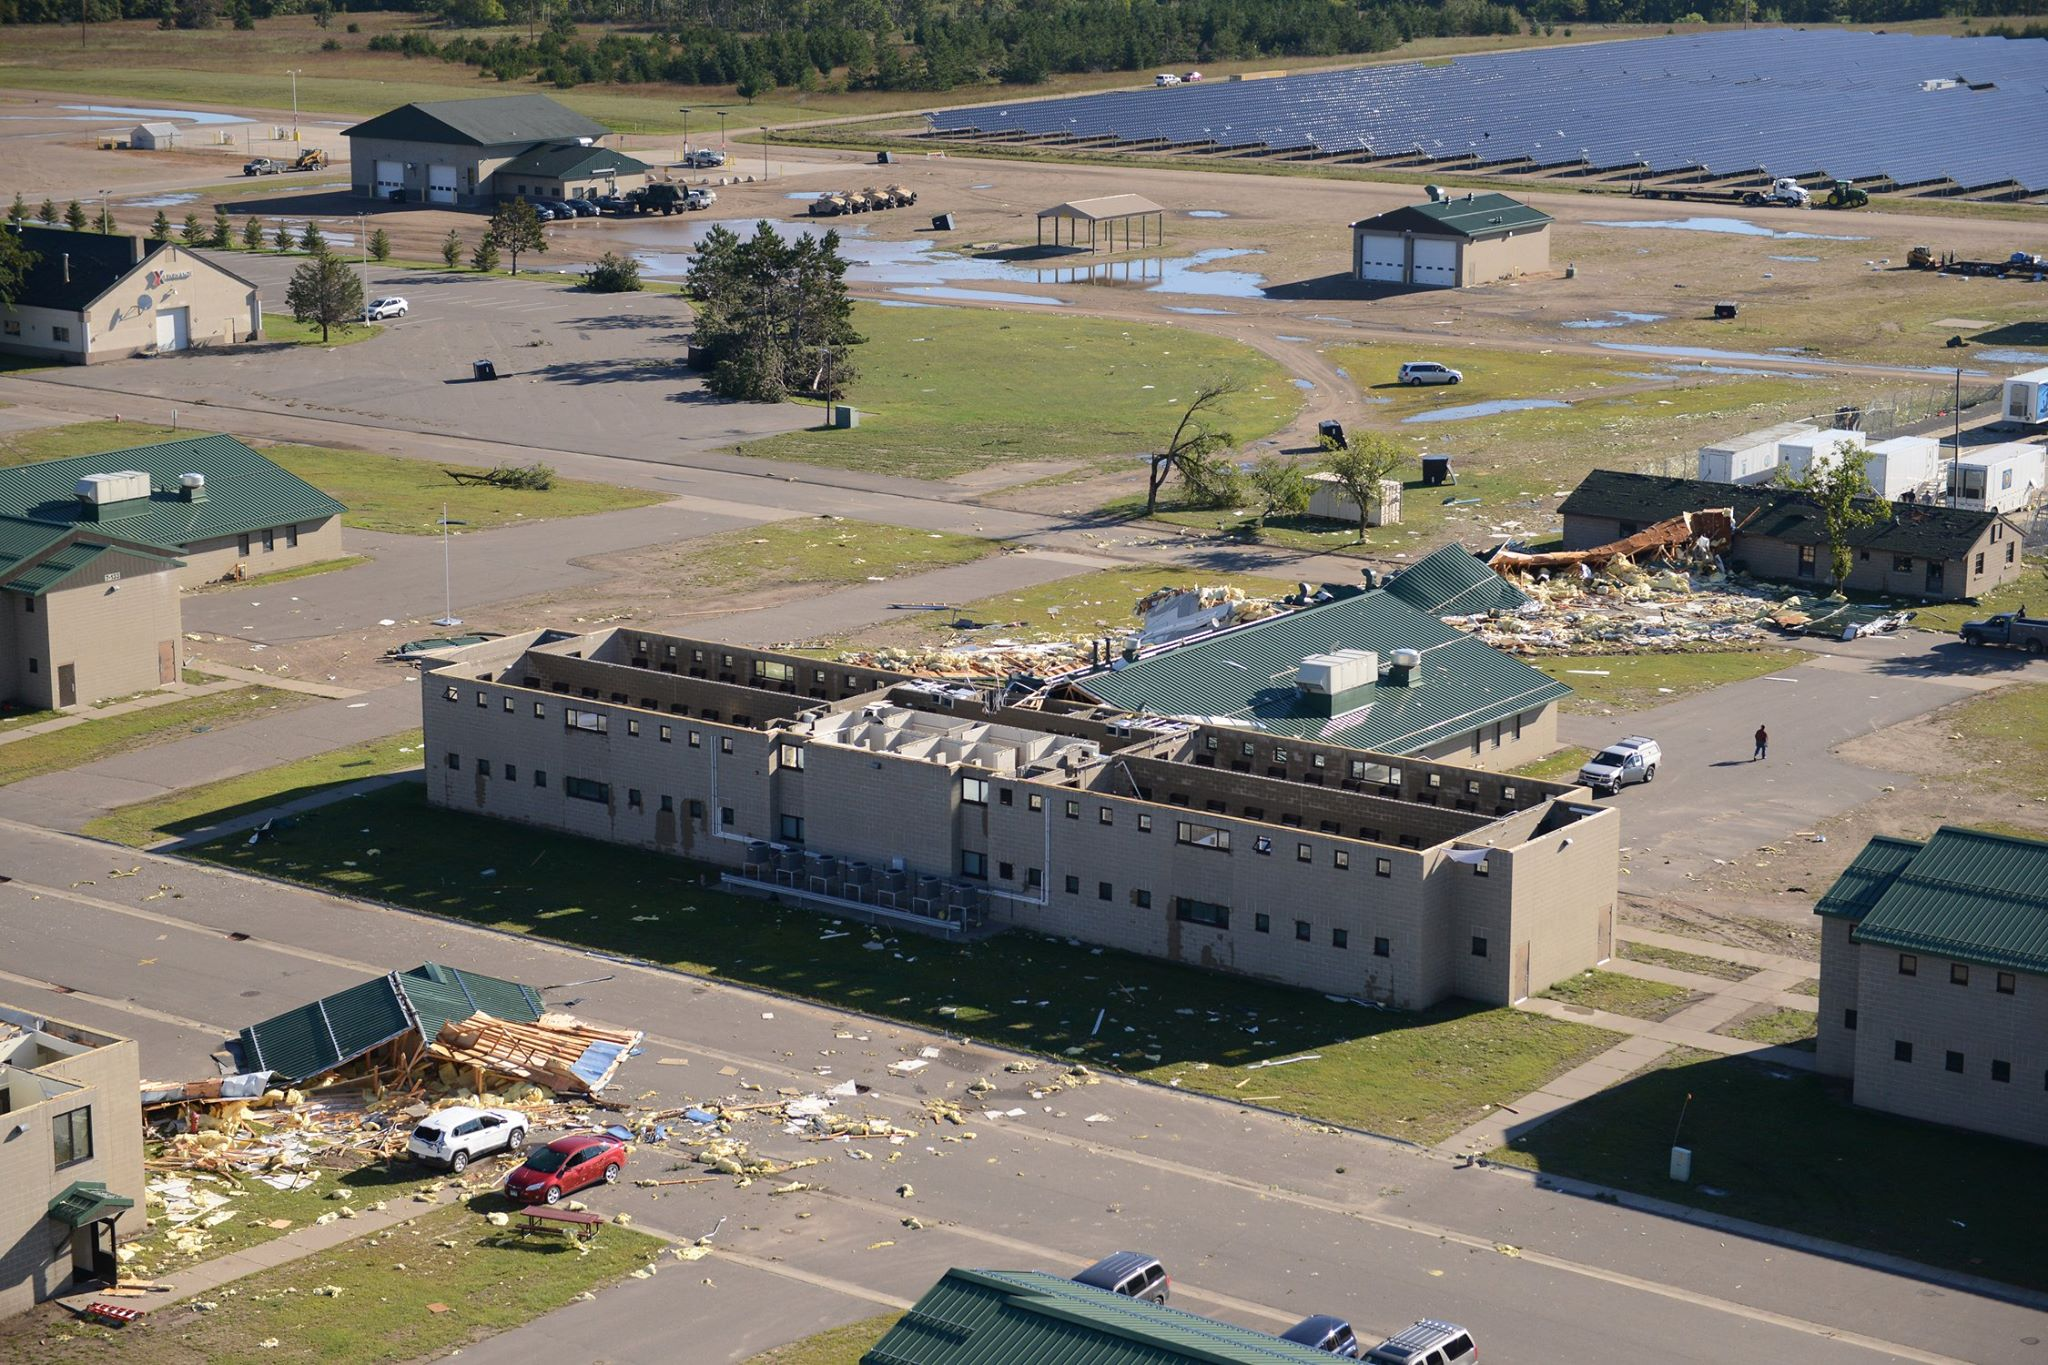 Damage at Camp Ripley from the September 7, 2016 Tornado